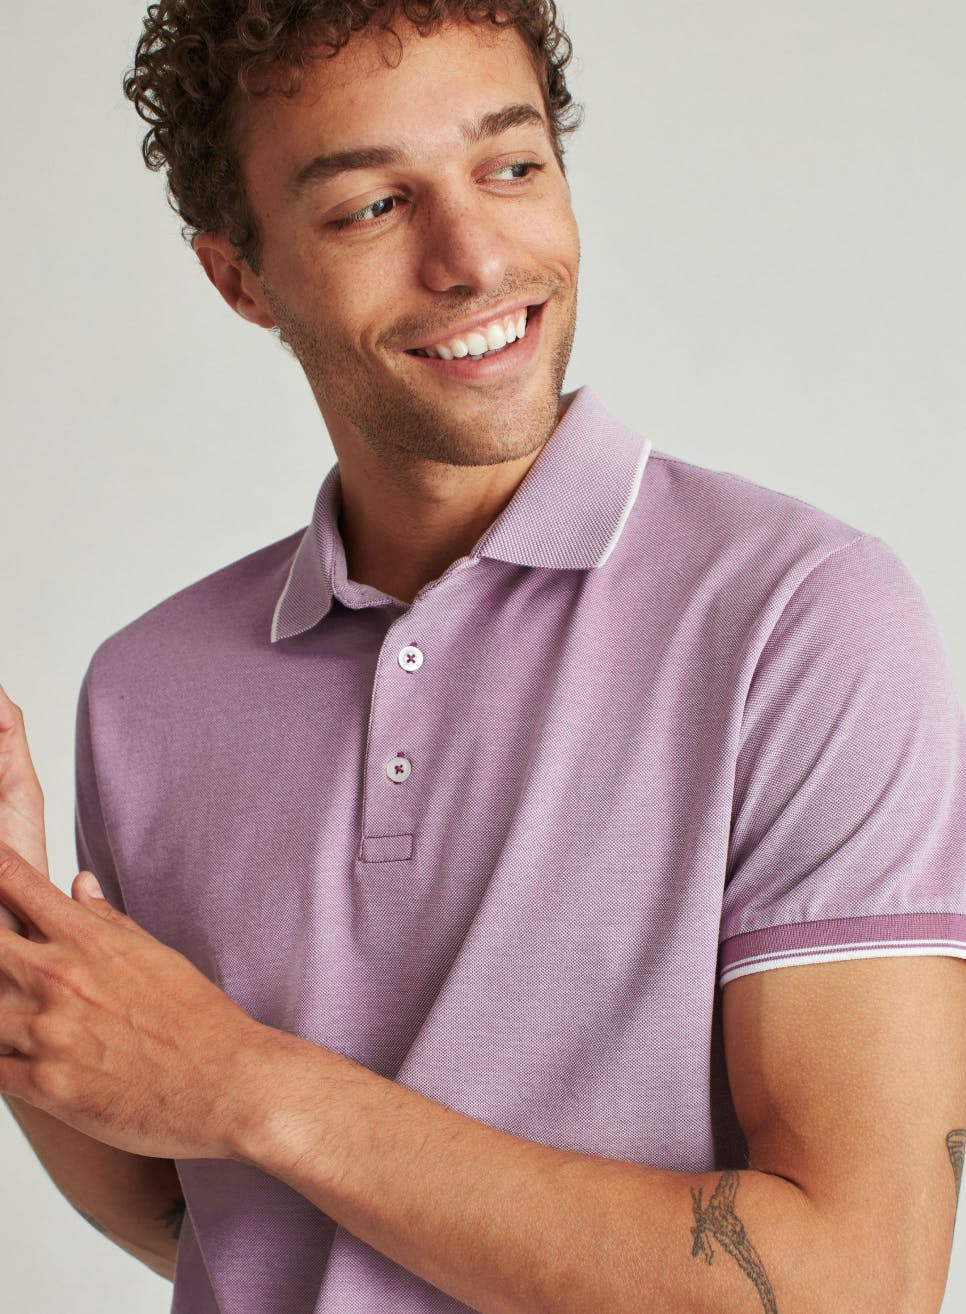 image of man wearing a purple pique polo